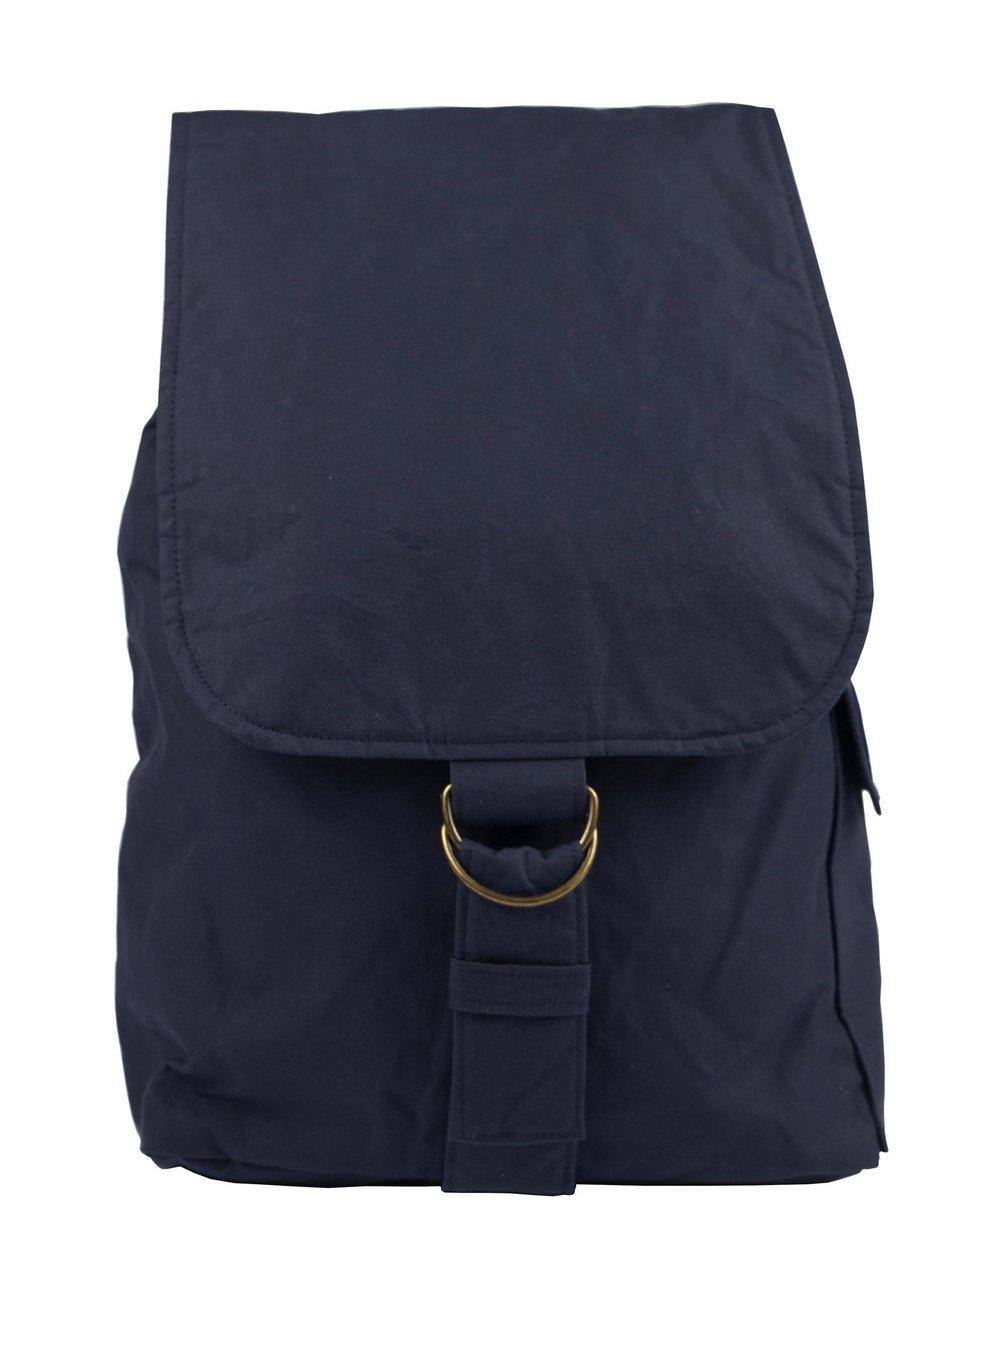 Bax and Bay Navy Zack rucksack, £129